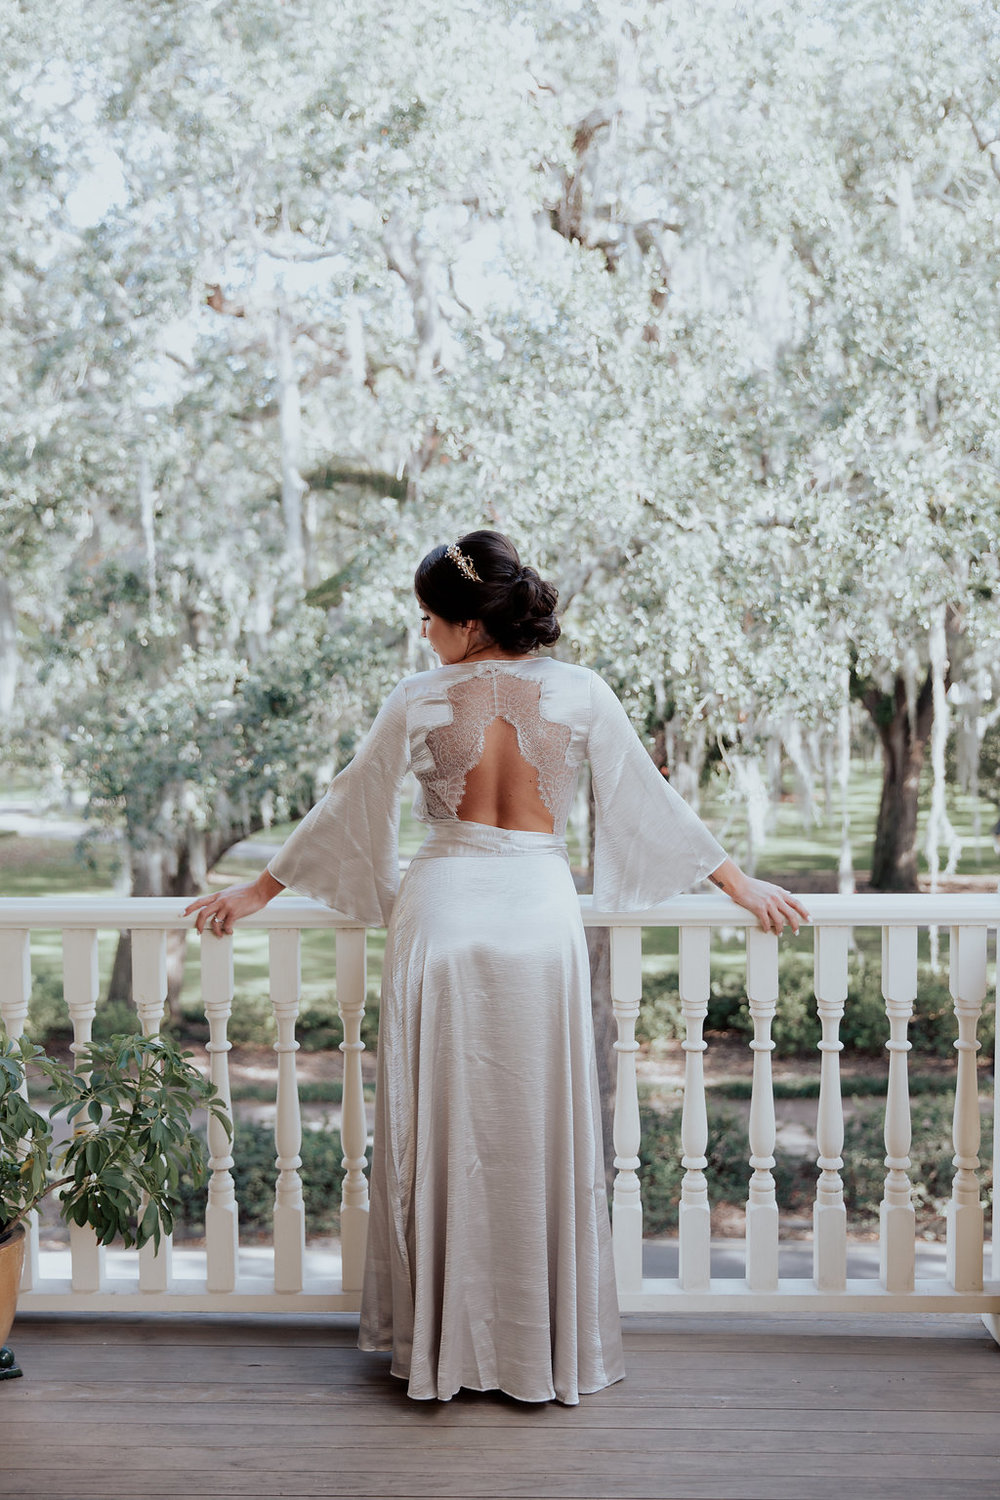 ivory-and-beau-savannah-bridal-shop-ivory-and-beau-couple-caitlin-and-tim-wormsloe-wedding-savannah-wedding-florist-house-of-ivory-photography-7.jpg